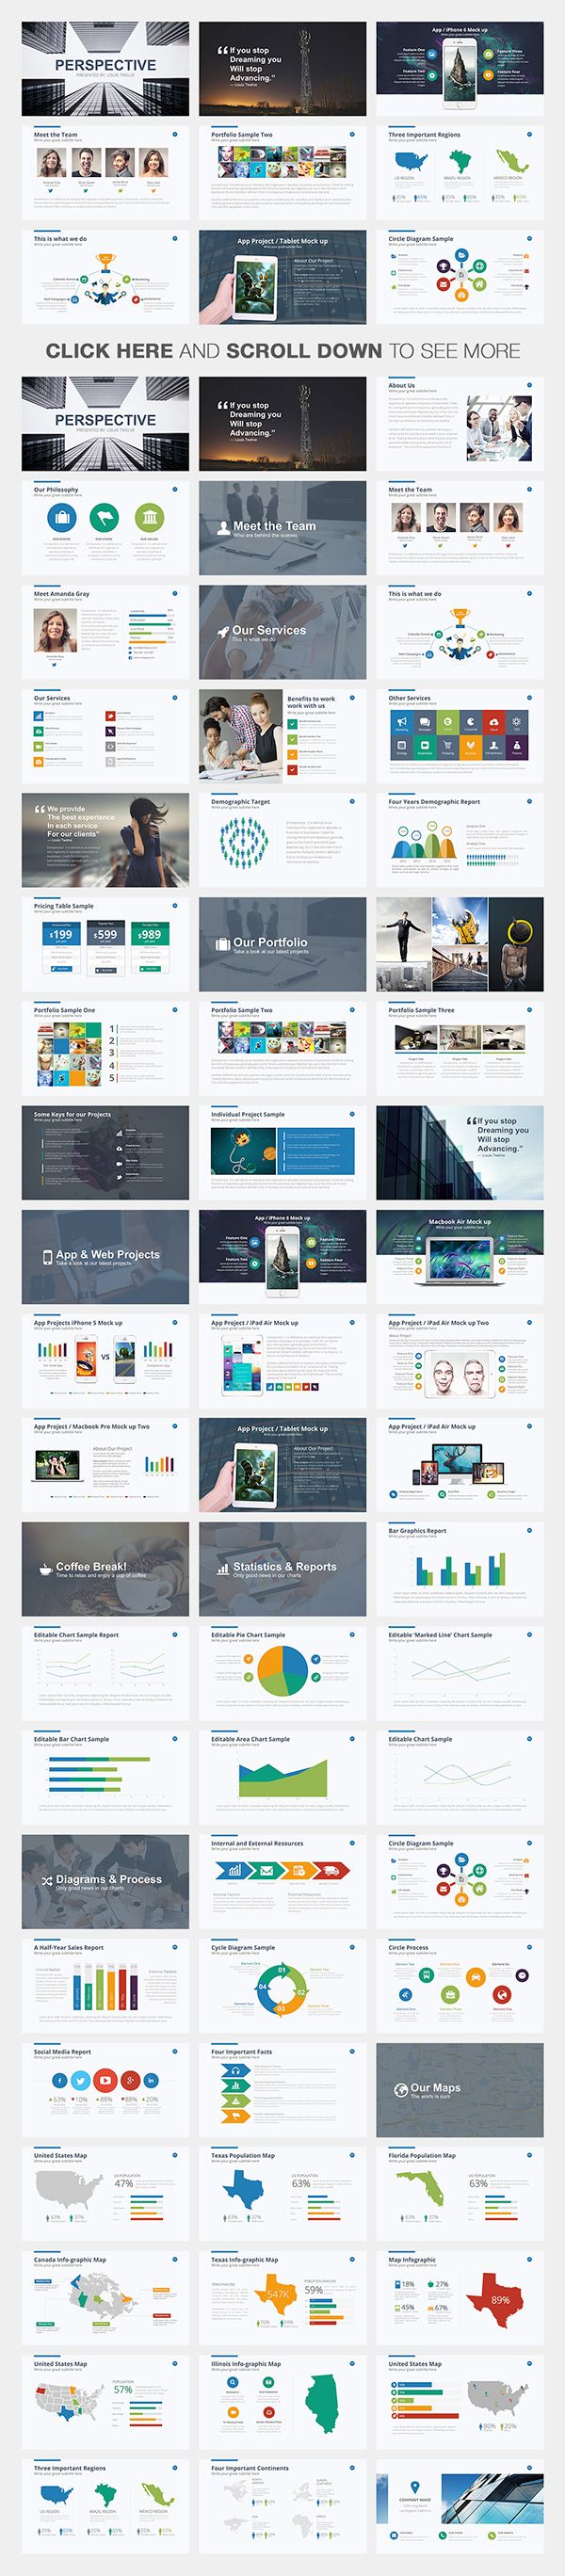 Perspective Powerpoint Template on Behance